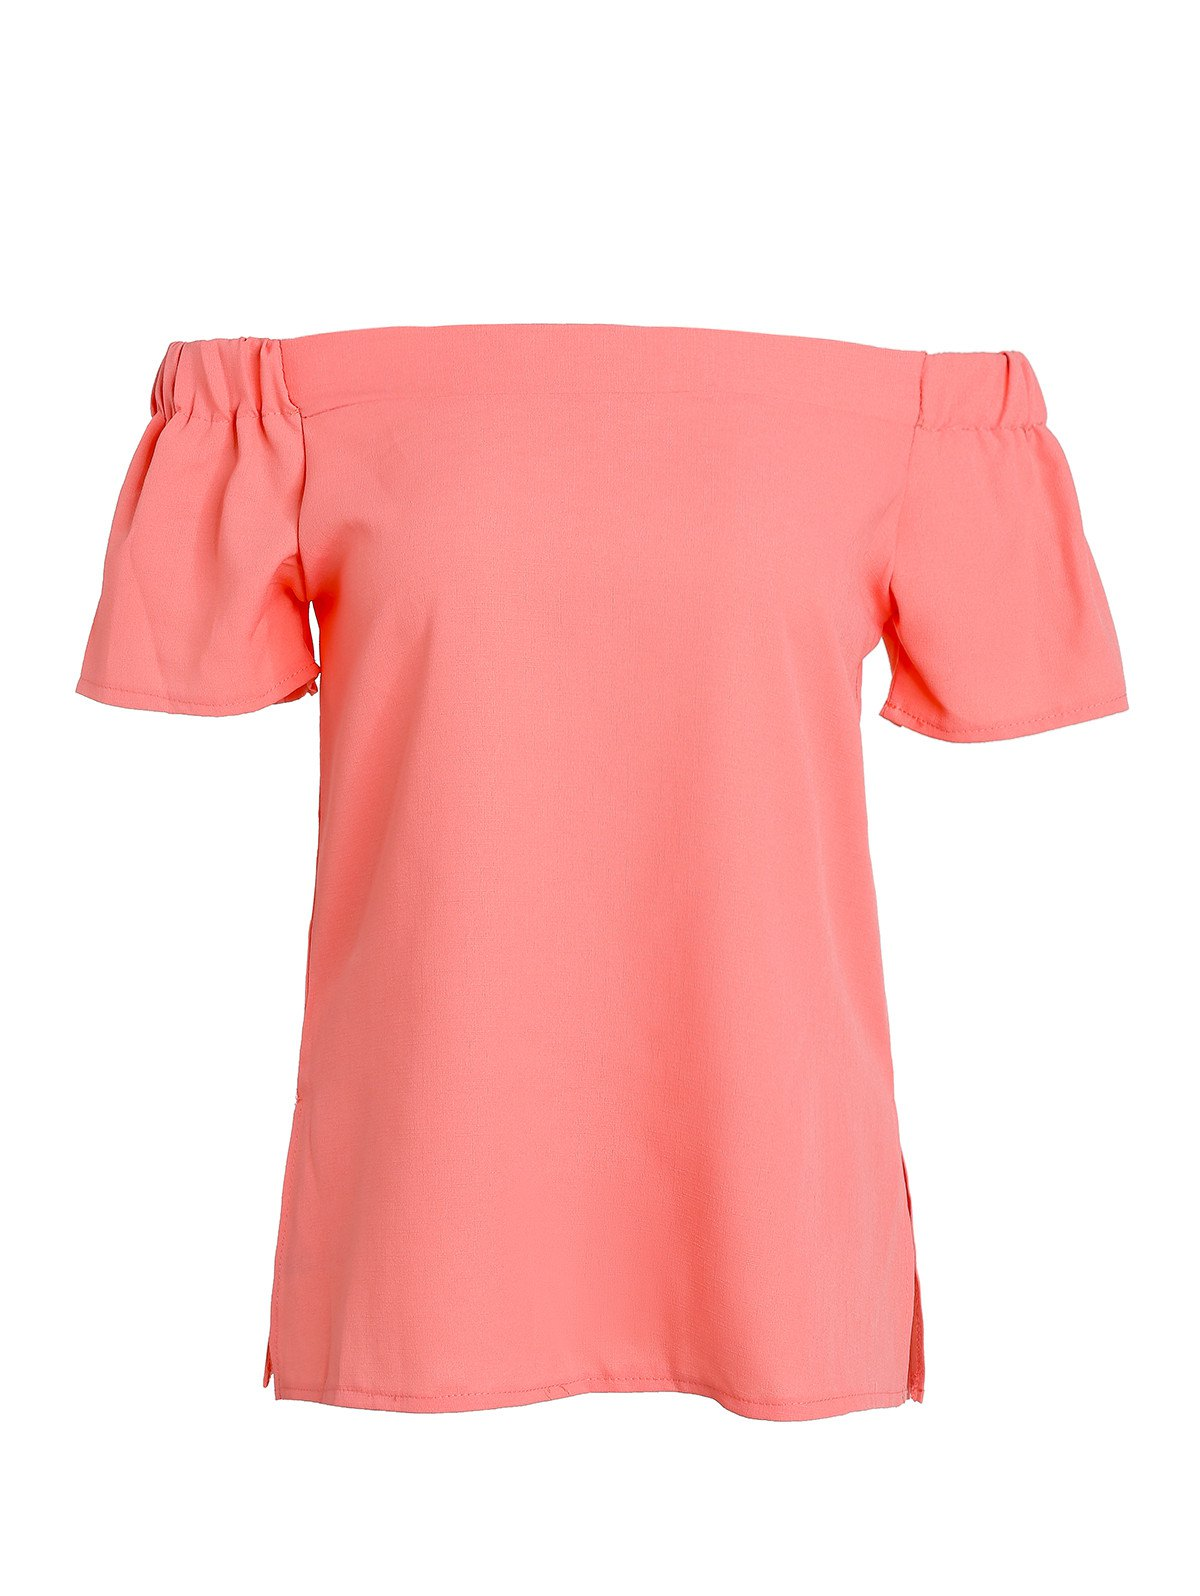 Fashionable Off The Shoulder Short Sleeve Solid Color Blouse For Women - ORANGE XL